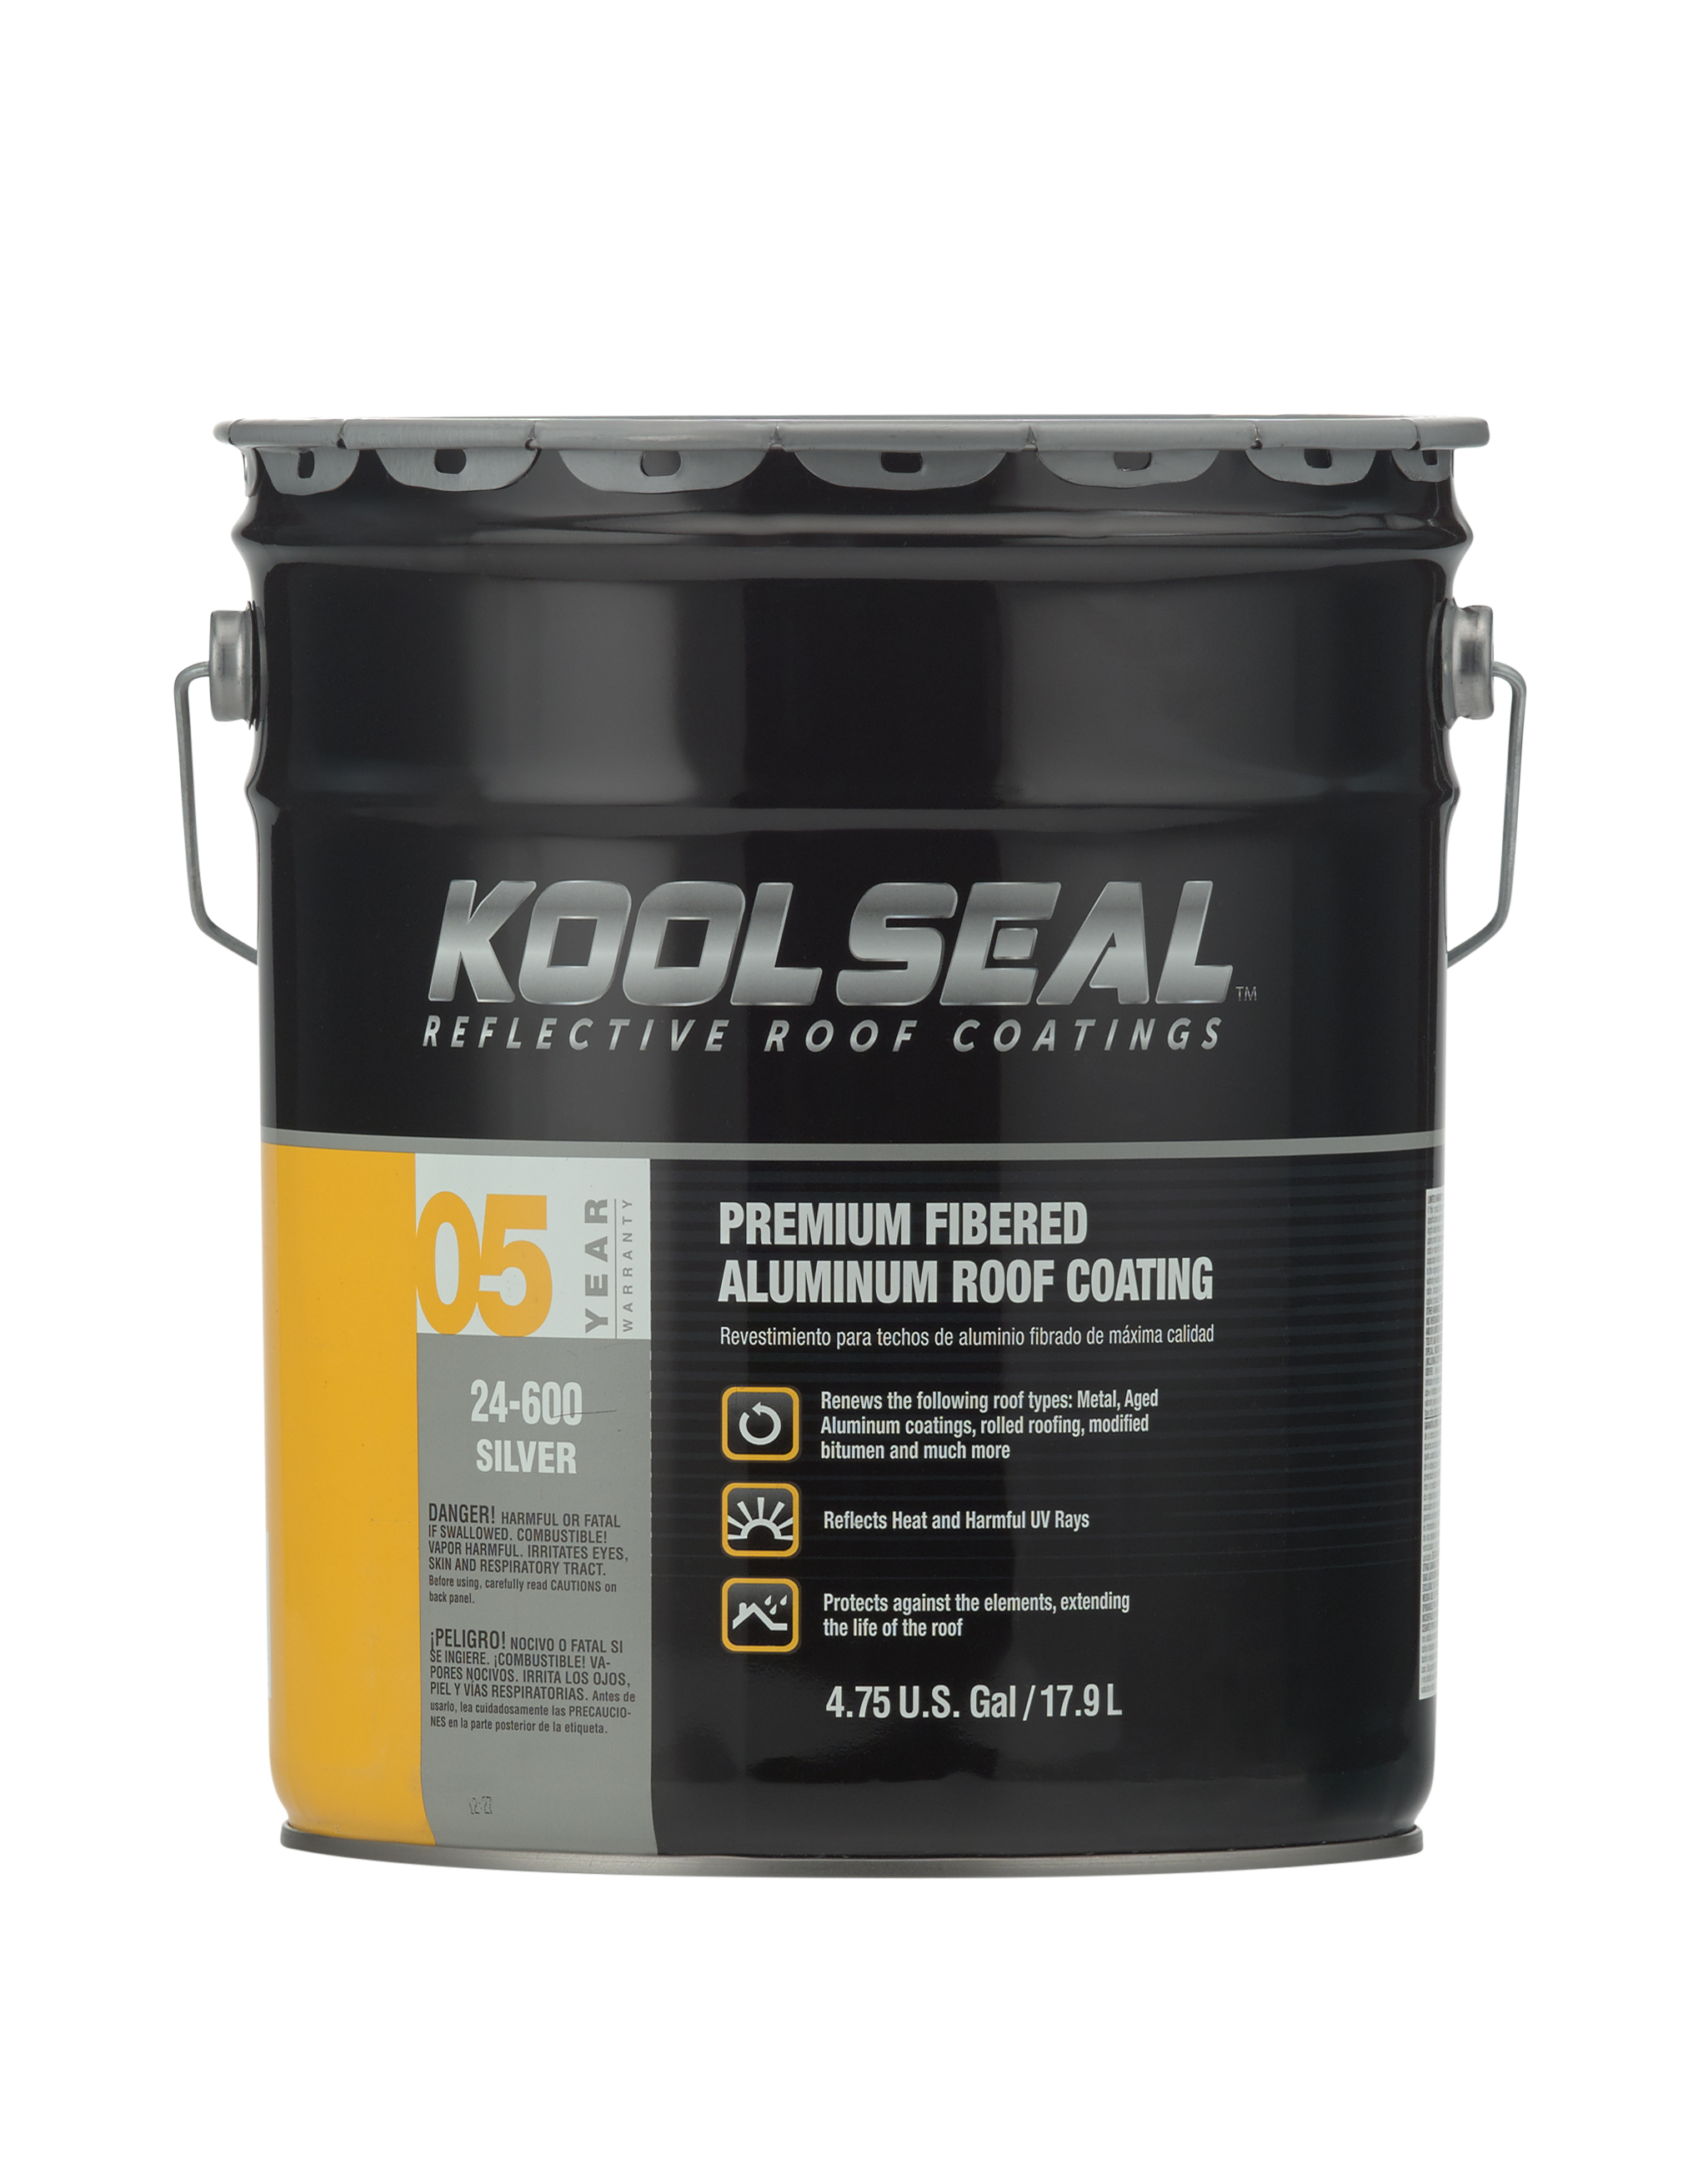 ... Fibered Aluminum Roof Coating.  Ks_24600_premium_fibered_aluminum_5gal_5yr_main